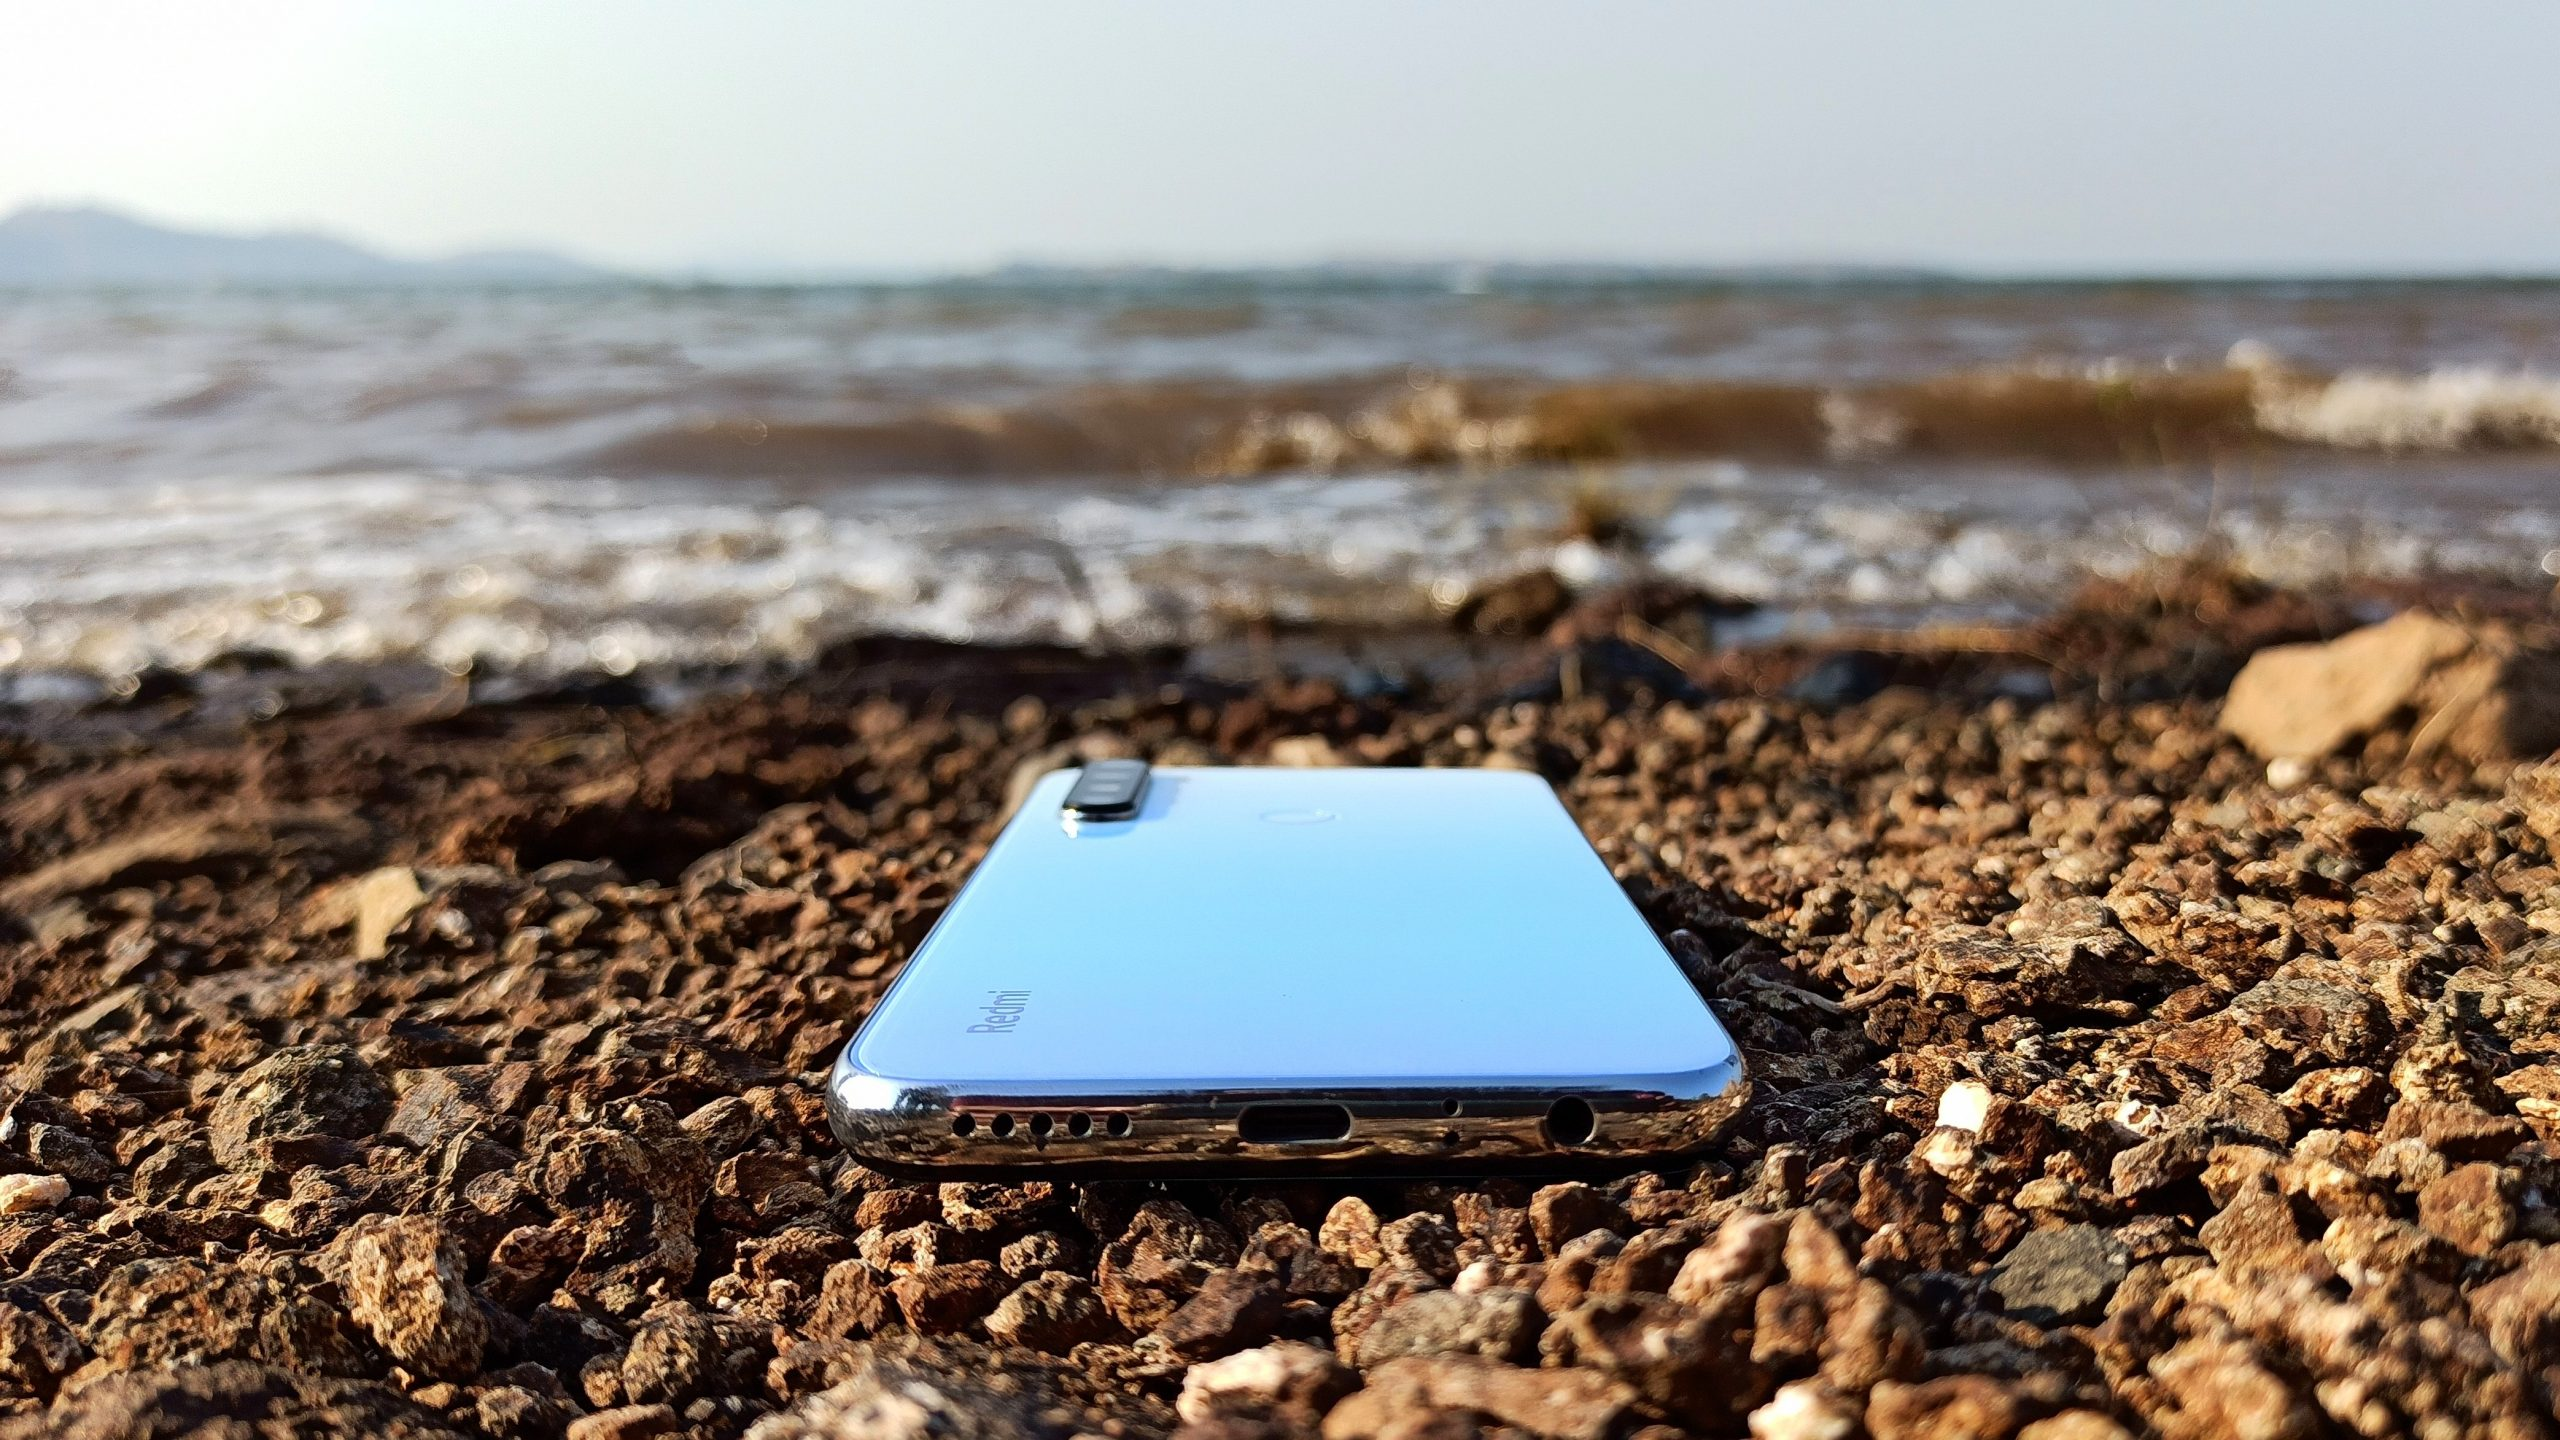 A mobile phone on a beach